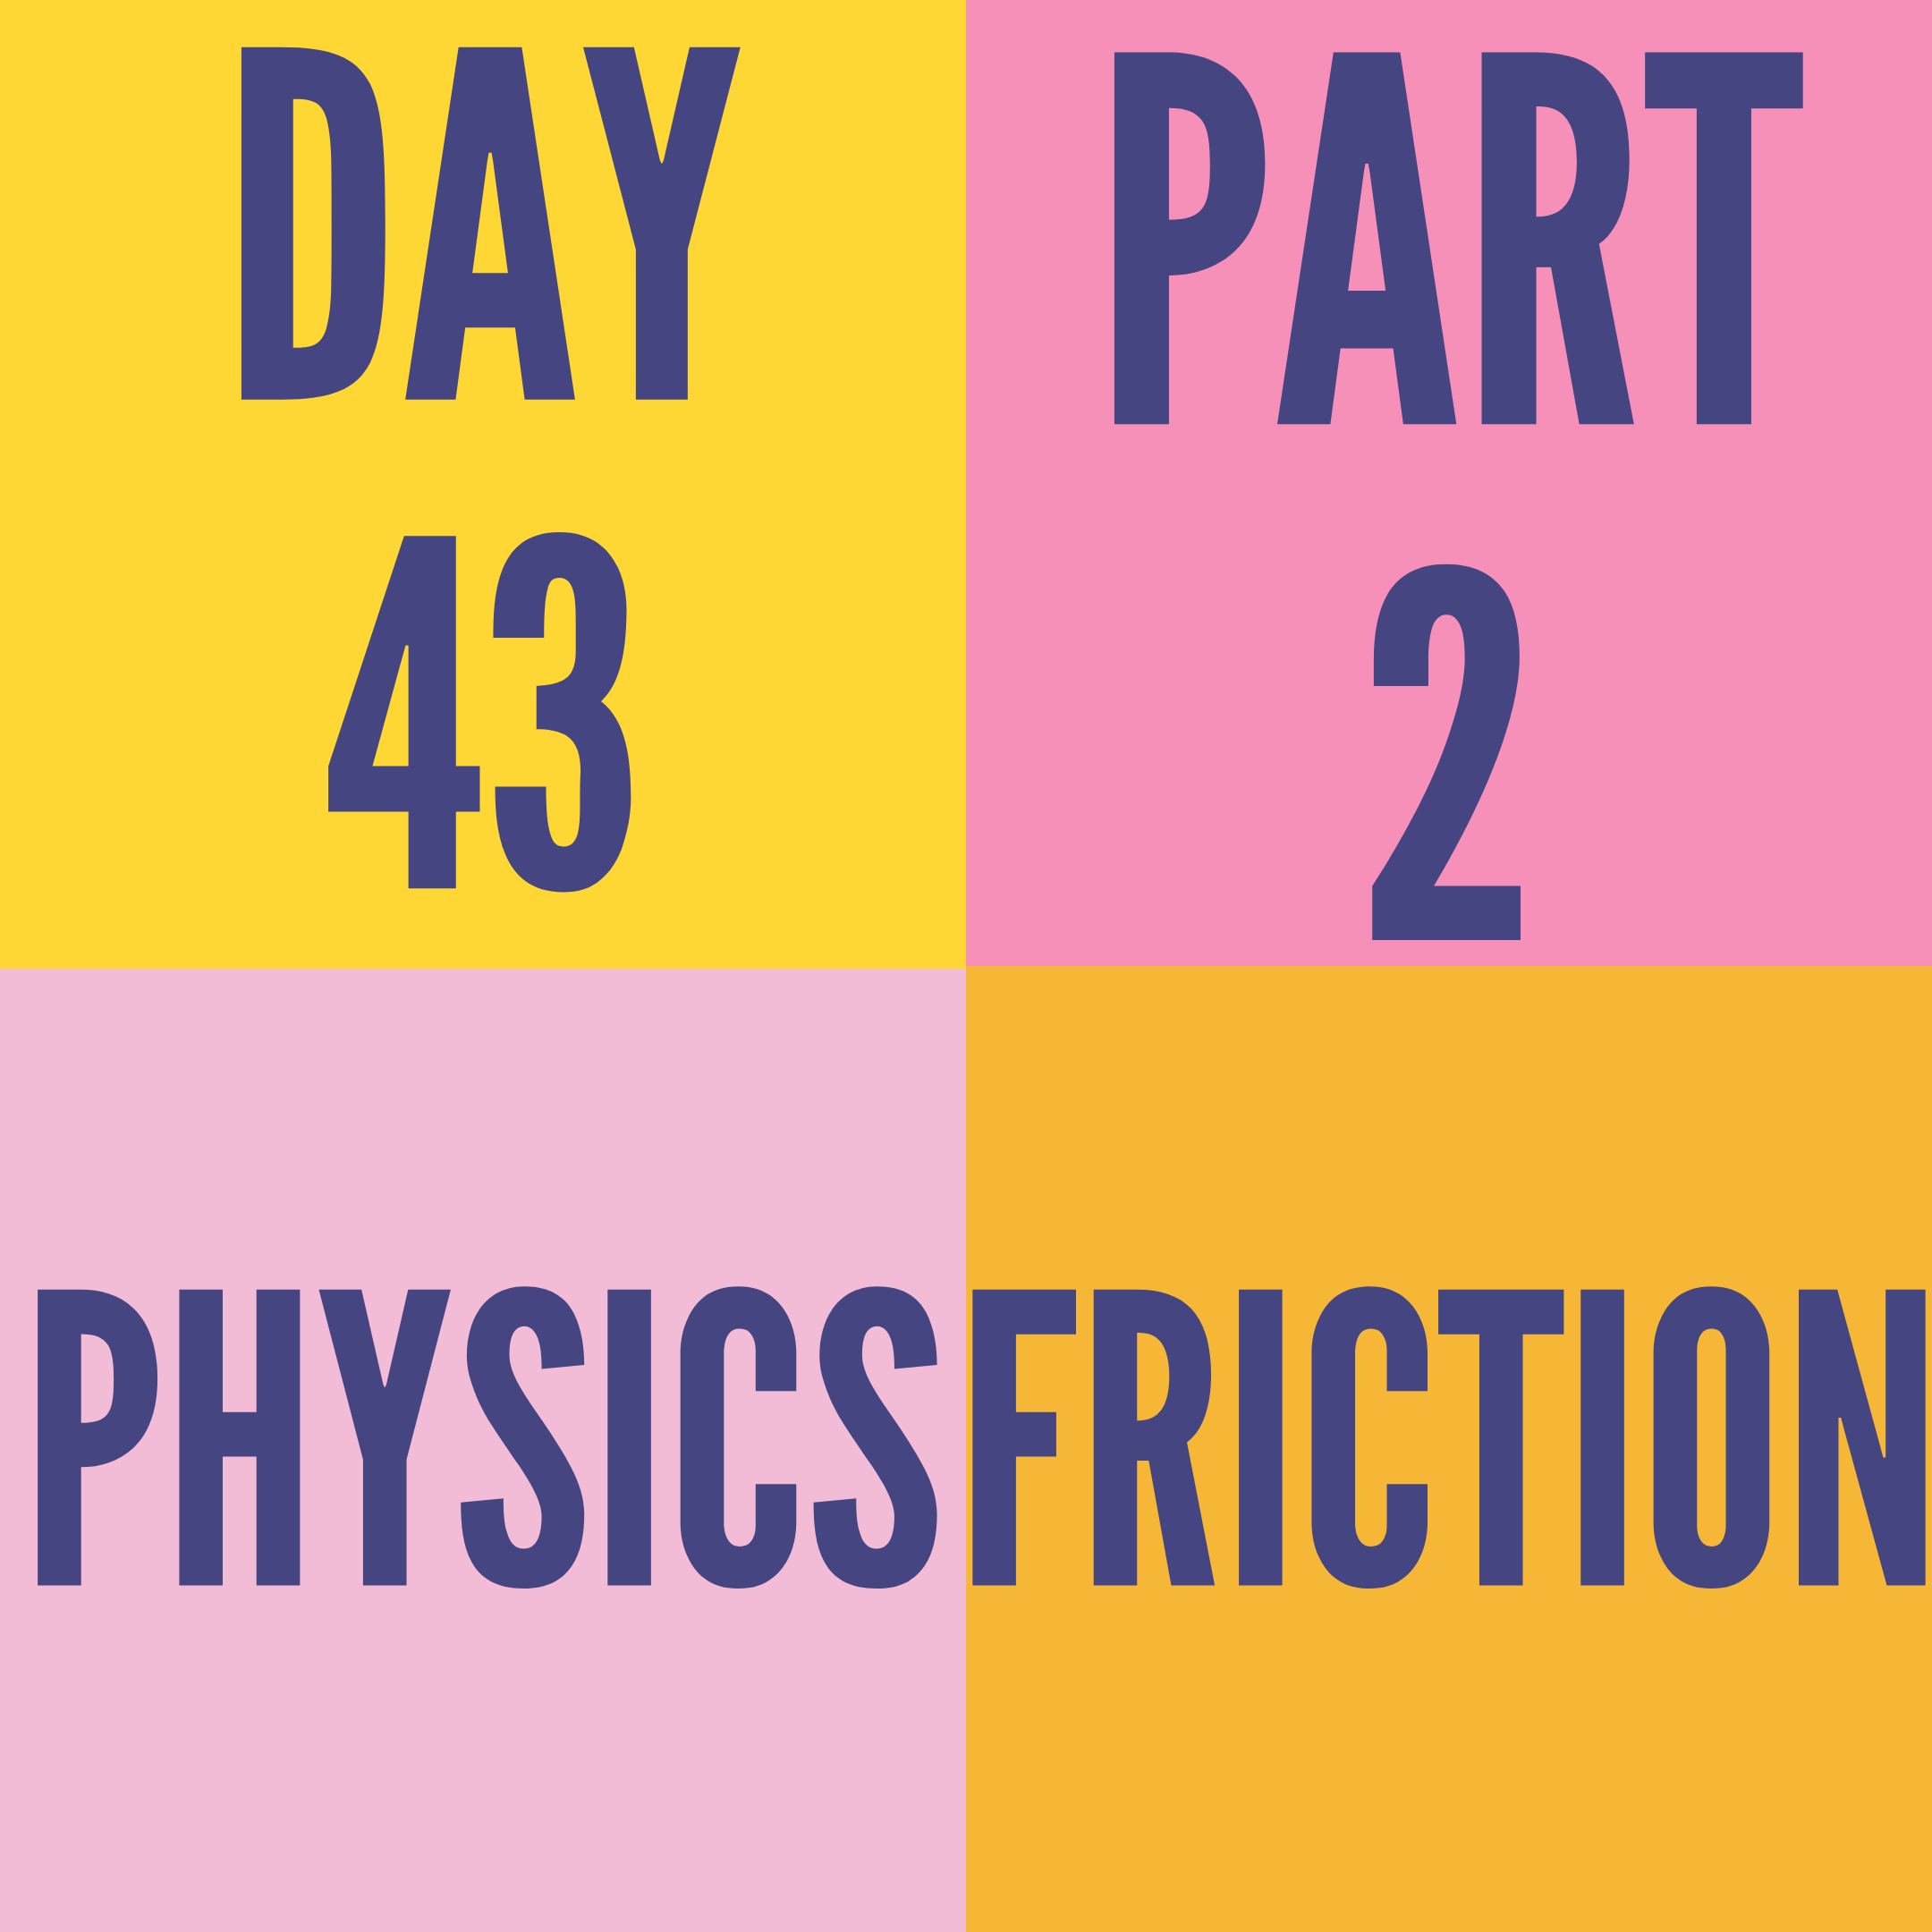 DAY-43 PART-2 FRICTION